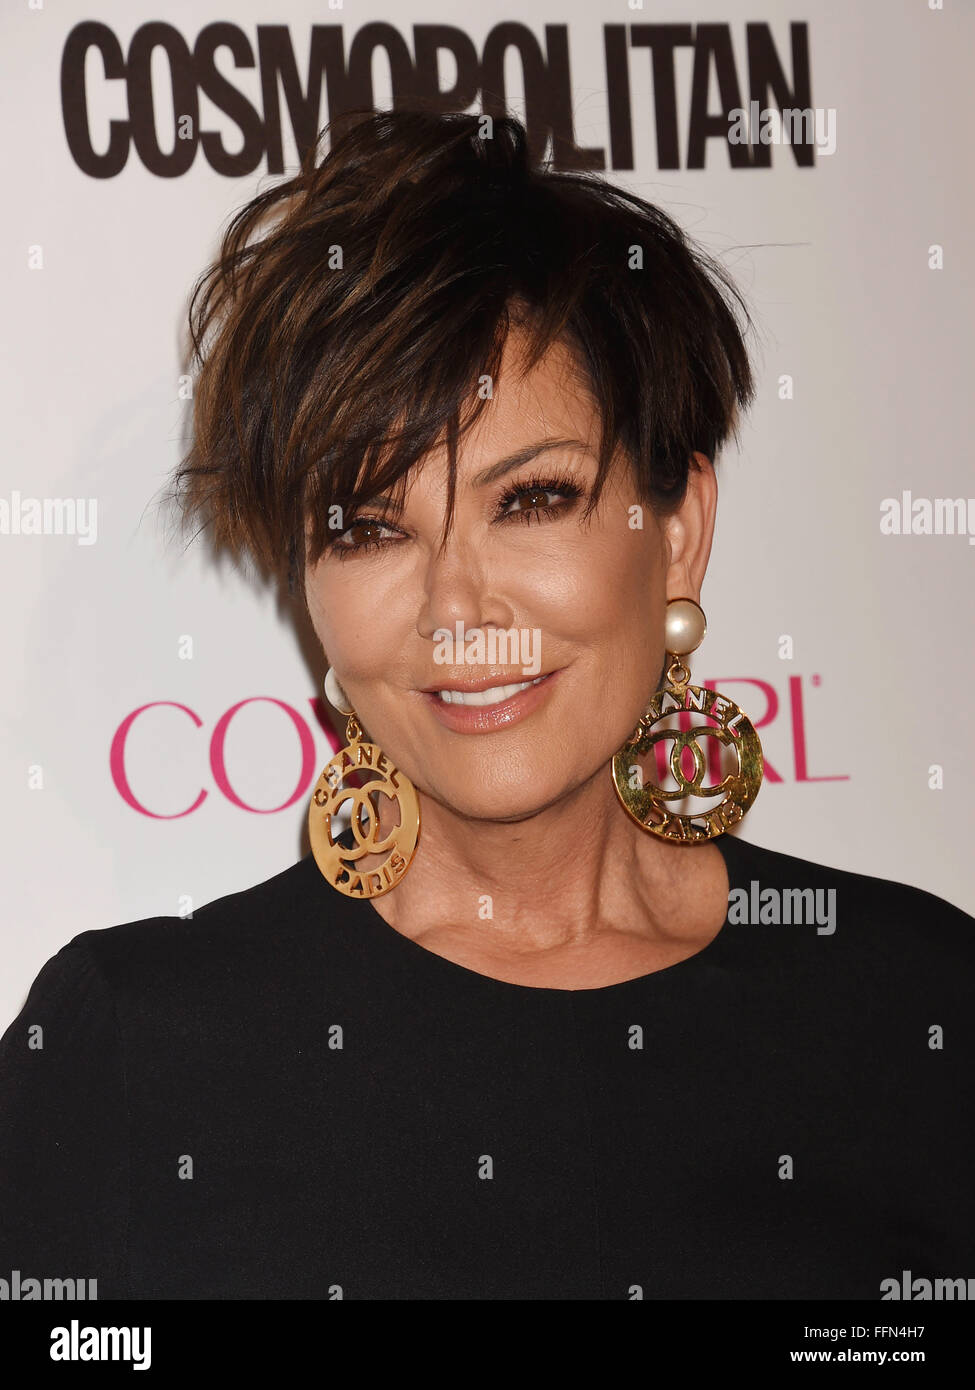 TV personality Kris Jenner arrives at Cosmopolitan Magazine's 50th Birthday Celebration at Ysabel on October - Stock Image